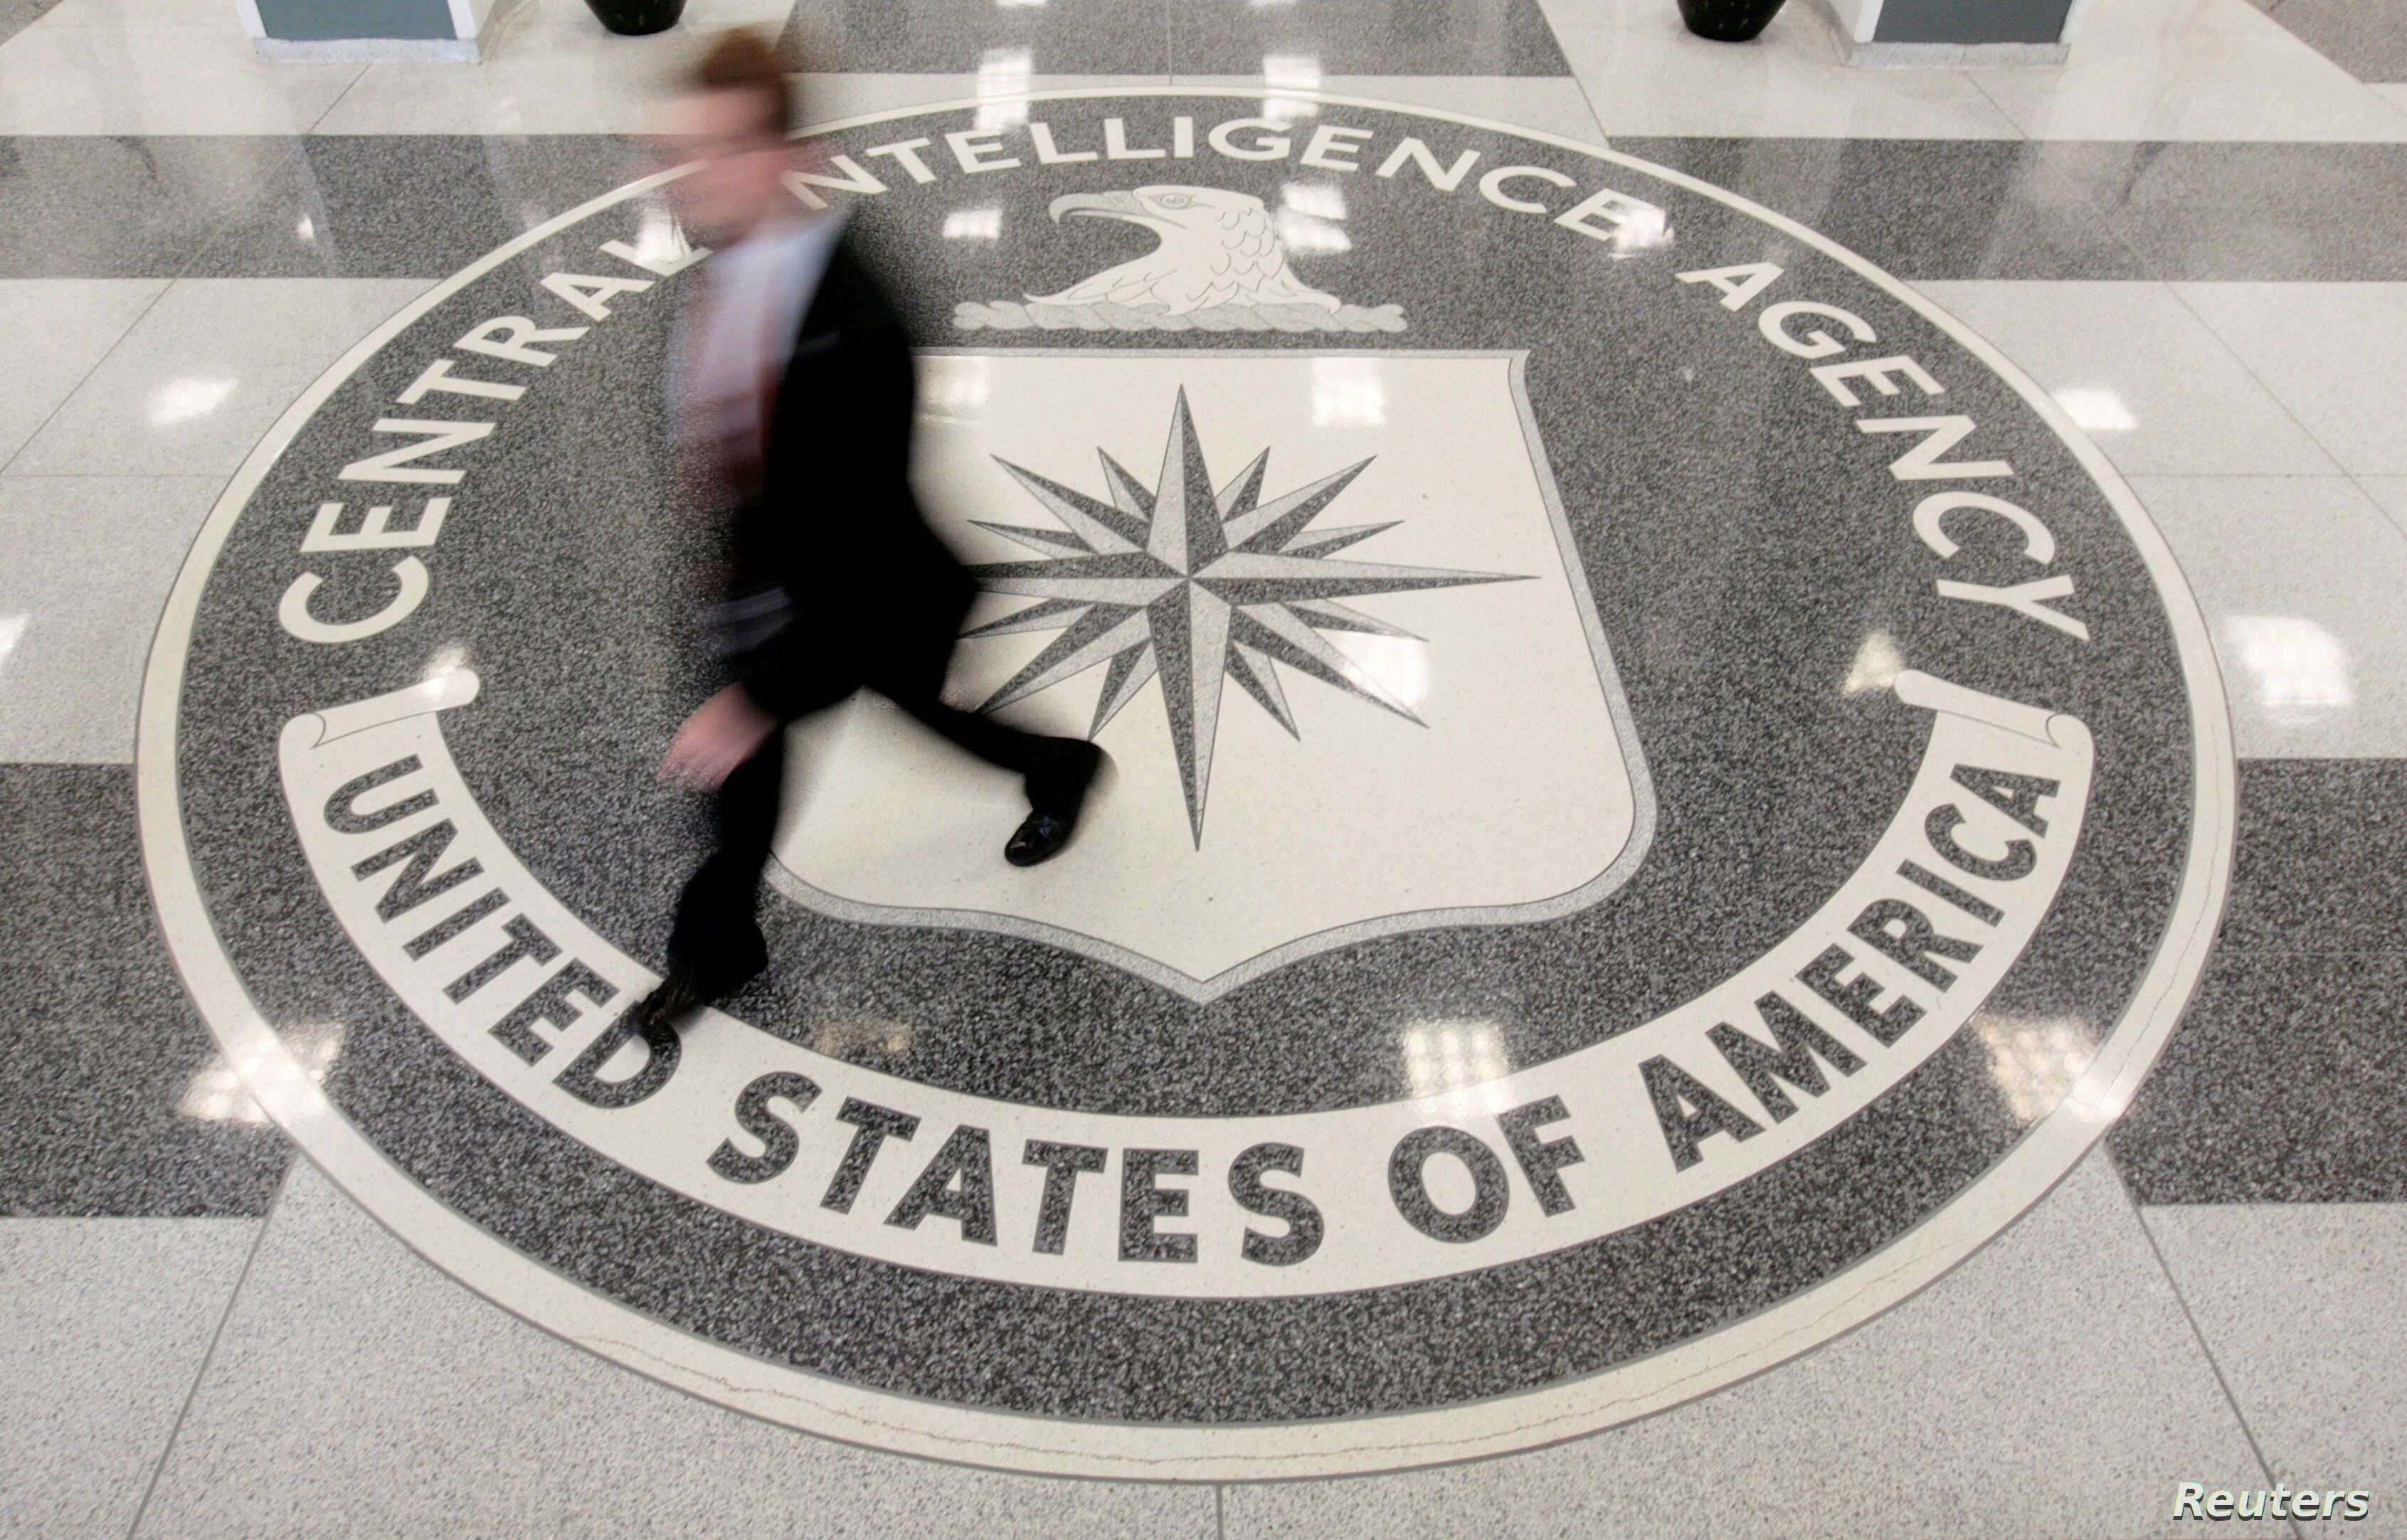 Russian found guilty of passing military secrets to CIA